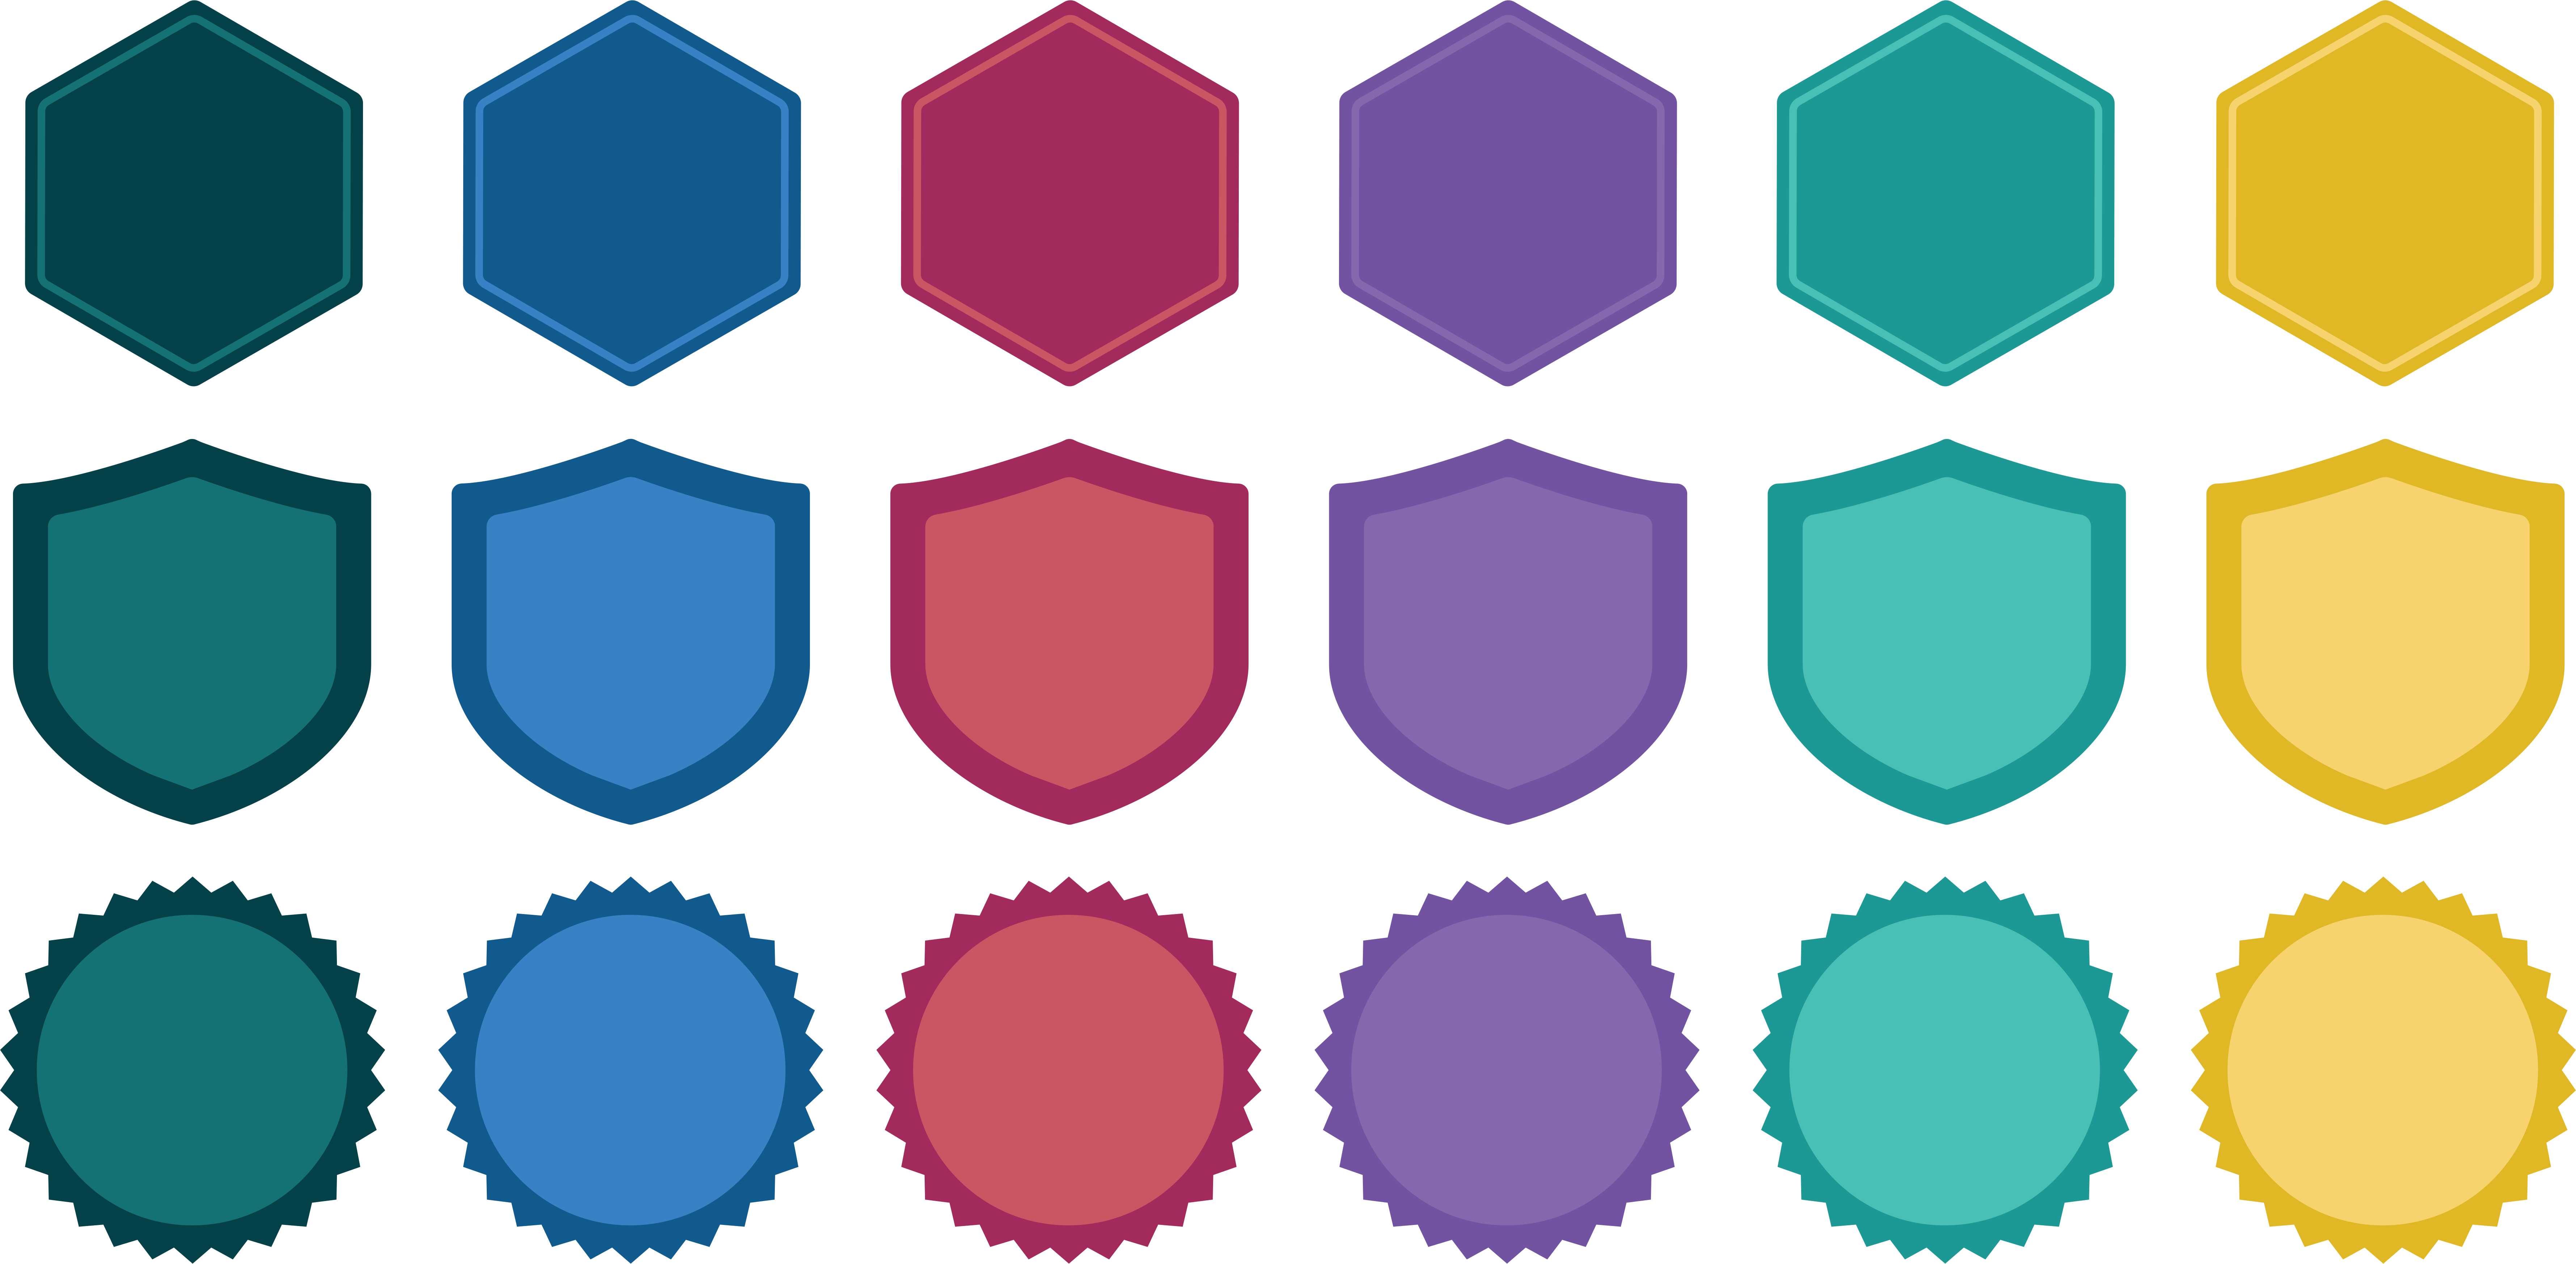 Badge shape png. Designing a accredible add